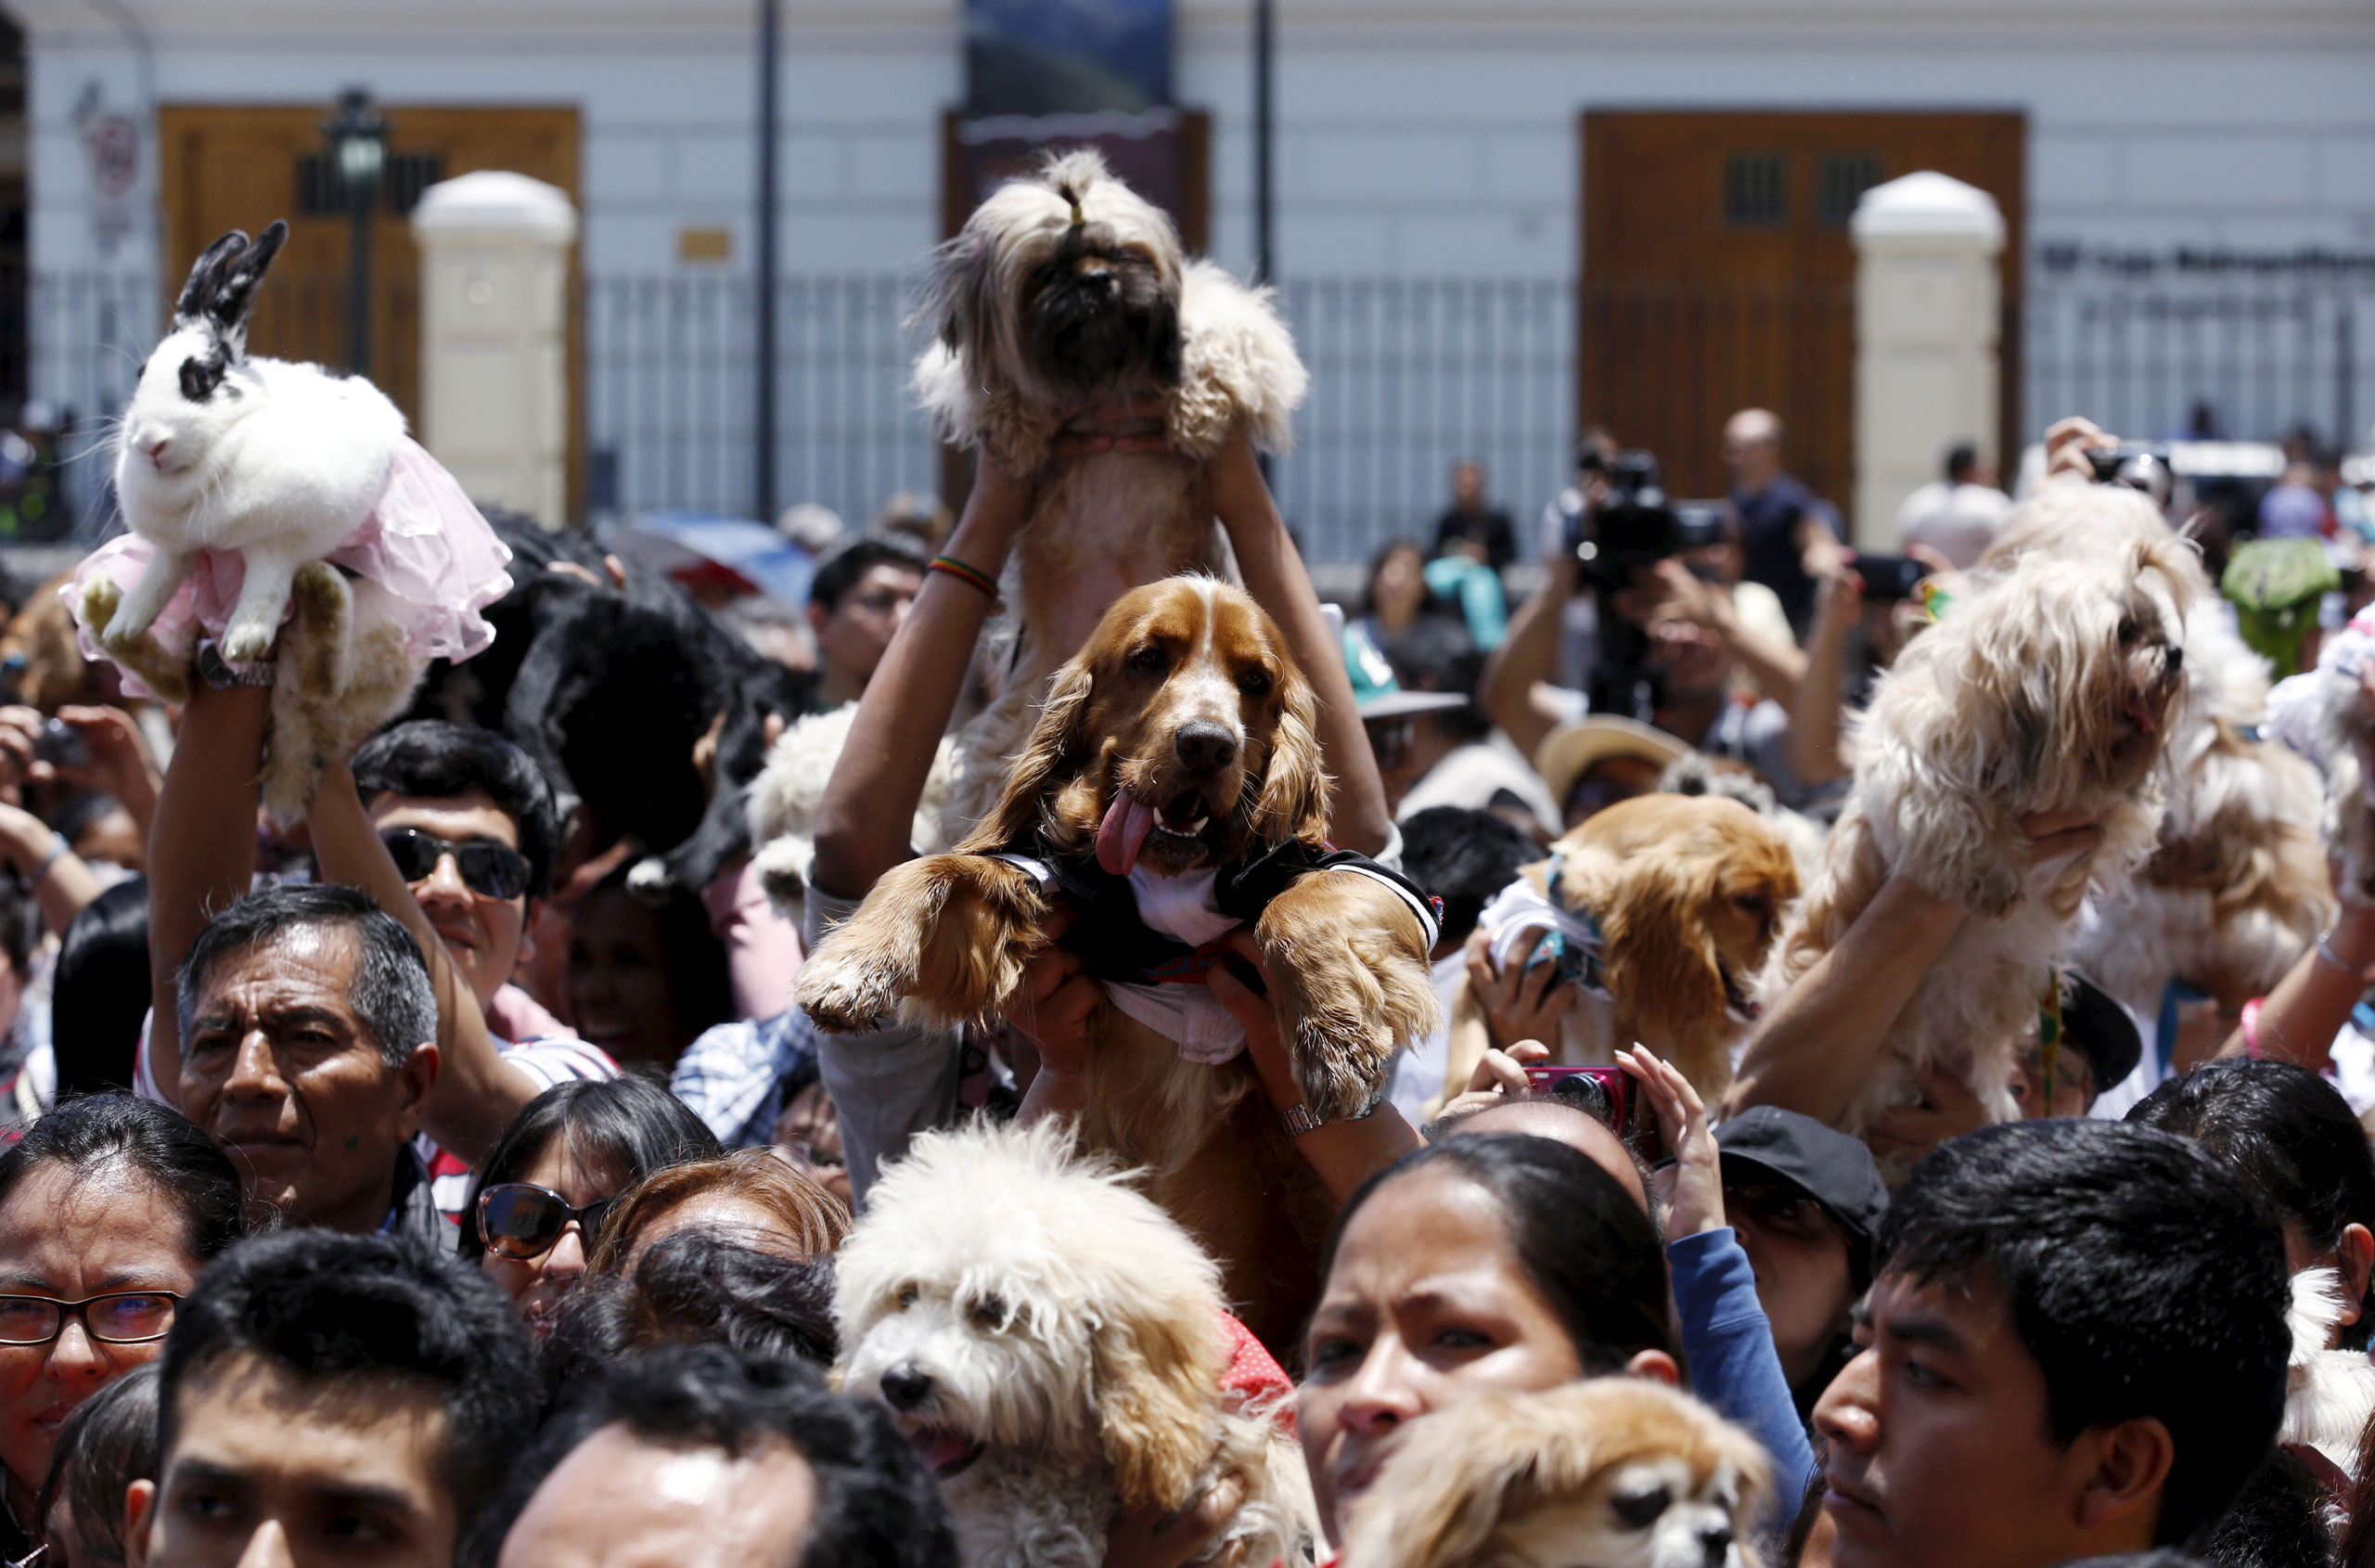 Hundreds of pets get blessed at a religious and blessing ceremony during Saint Francis of Assisi festivities outside the San Francisco church in downtown Lima, Peru, Oct. 4, 2015.